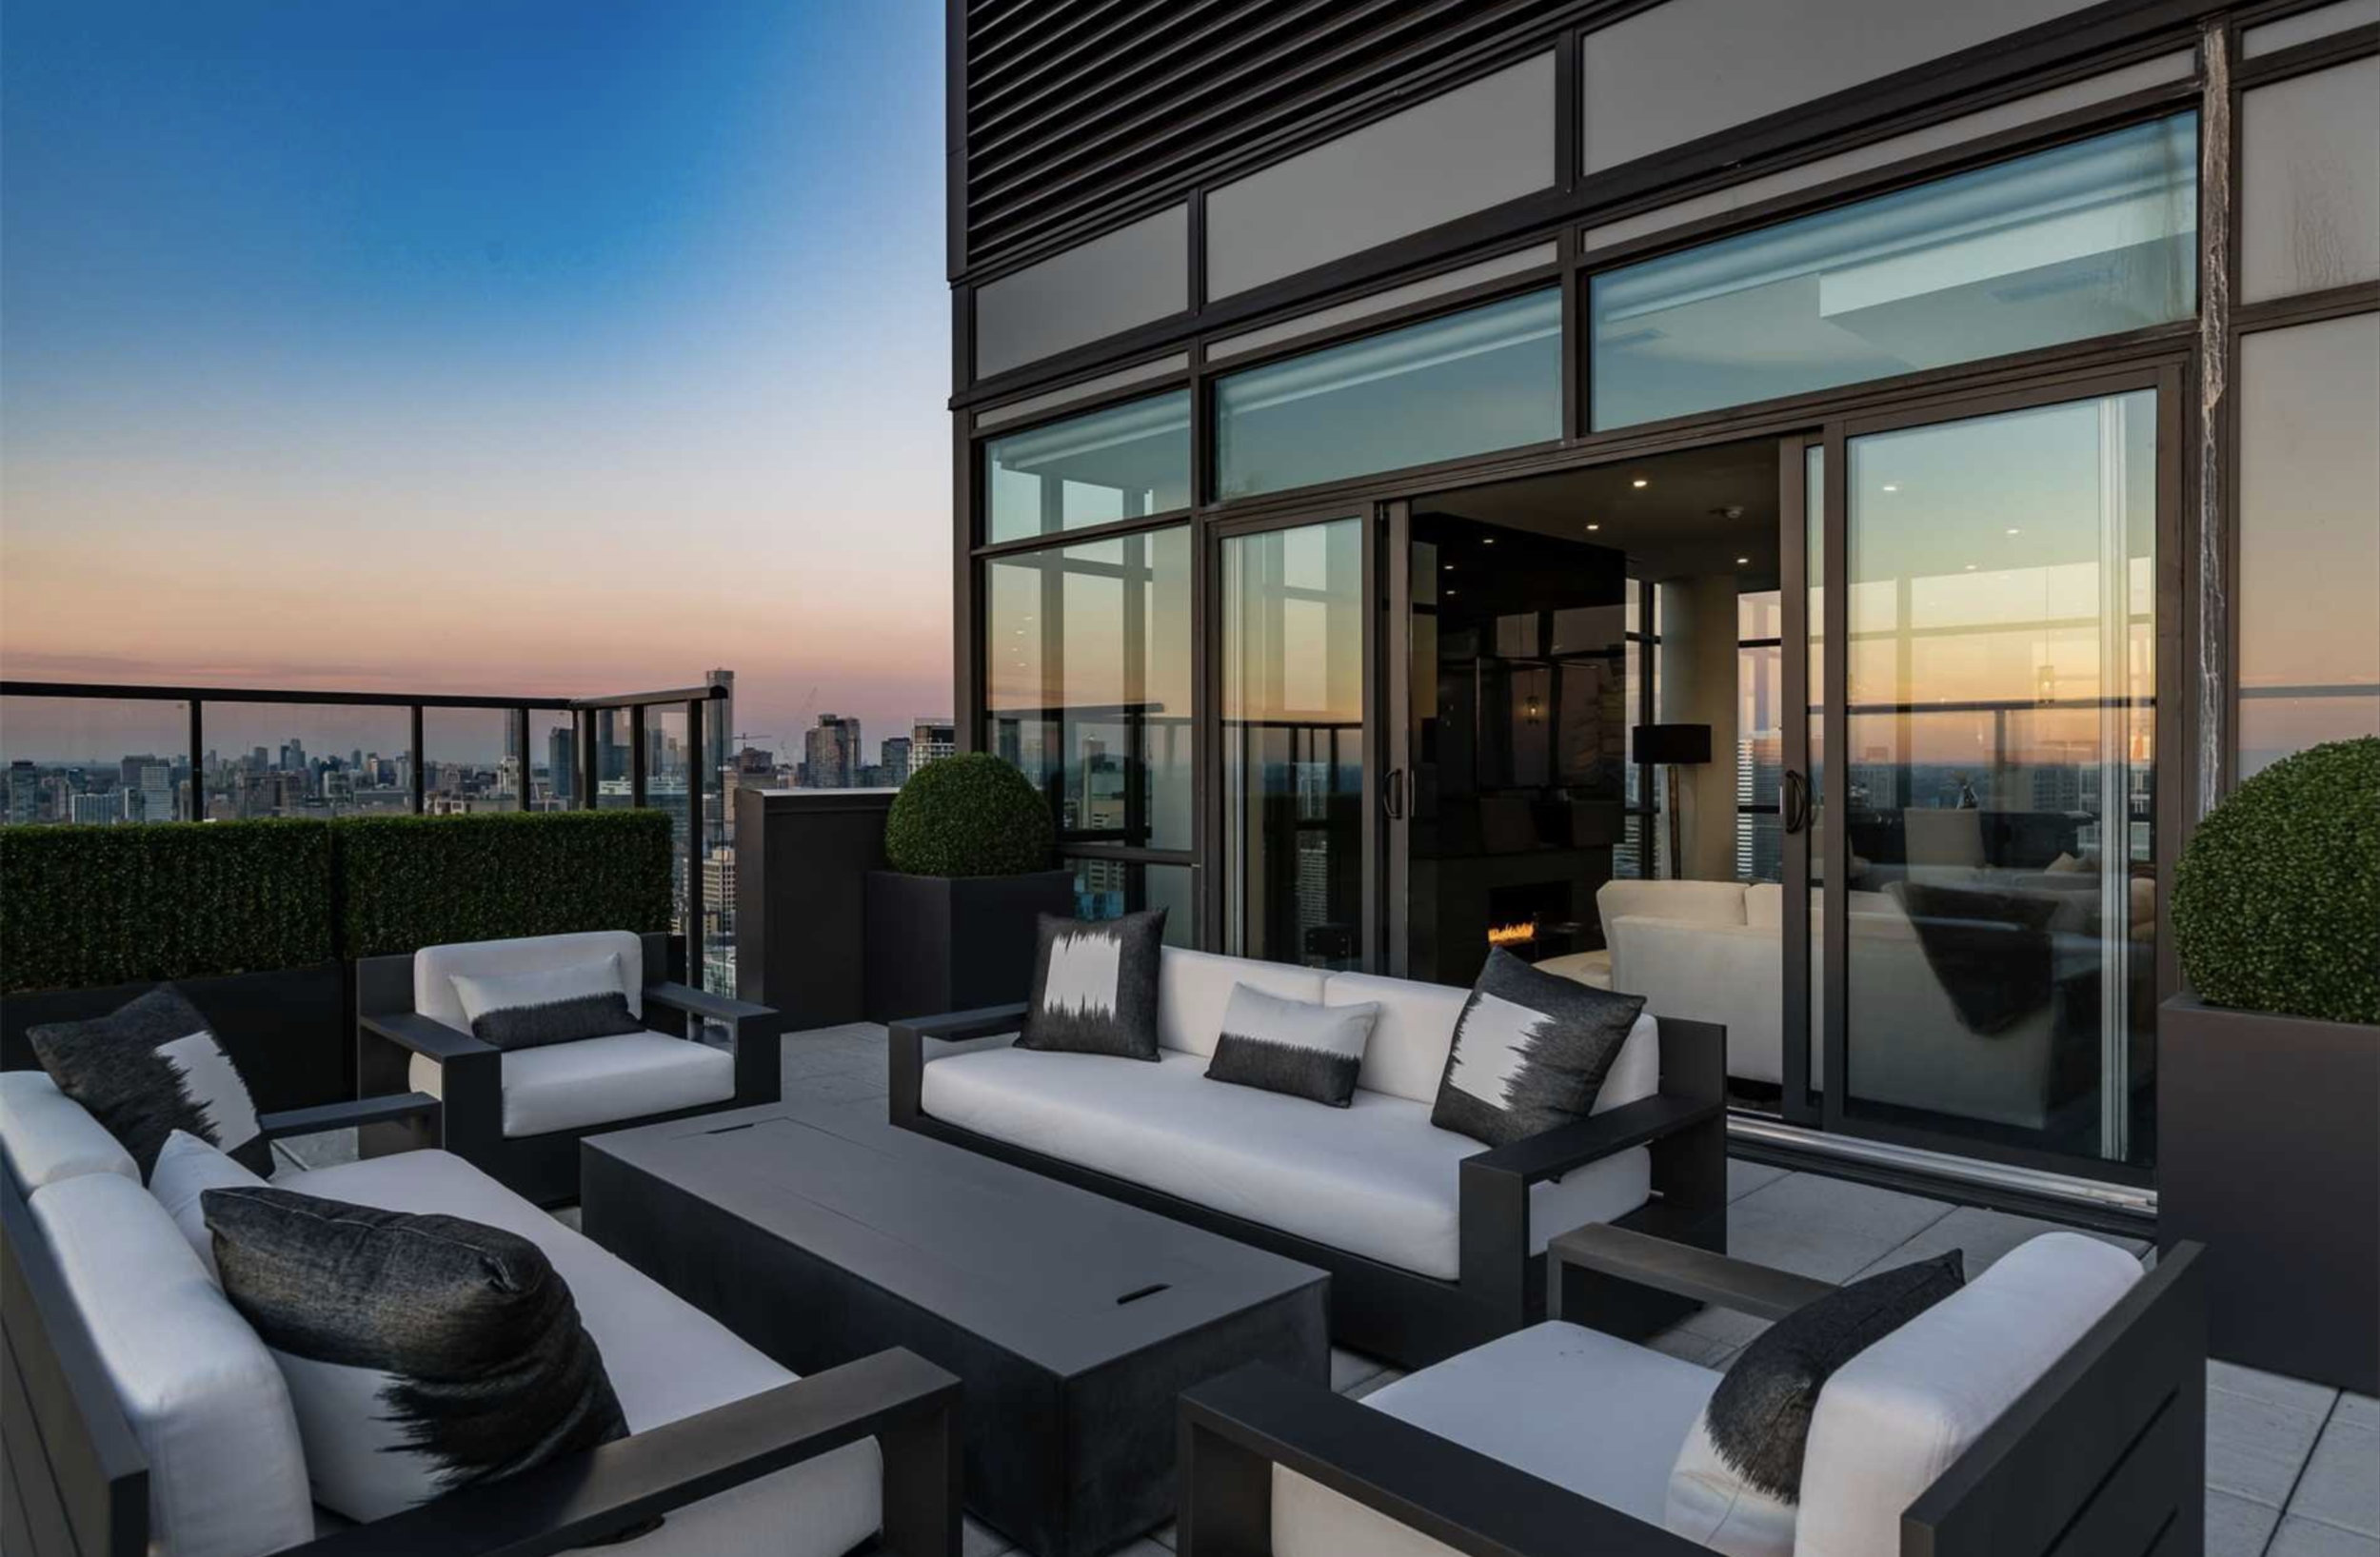 290 Adelaide St W - $6.2 Million | 3-Bed, 4-Bath with 360 Degree Views